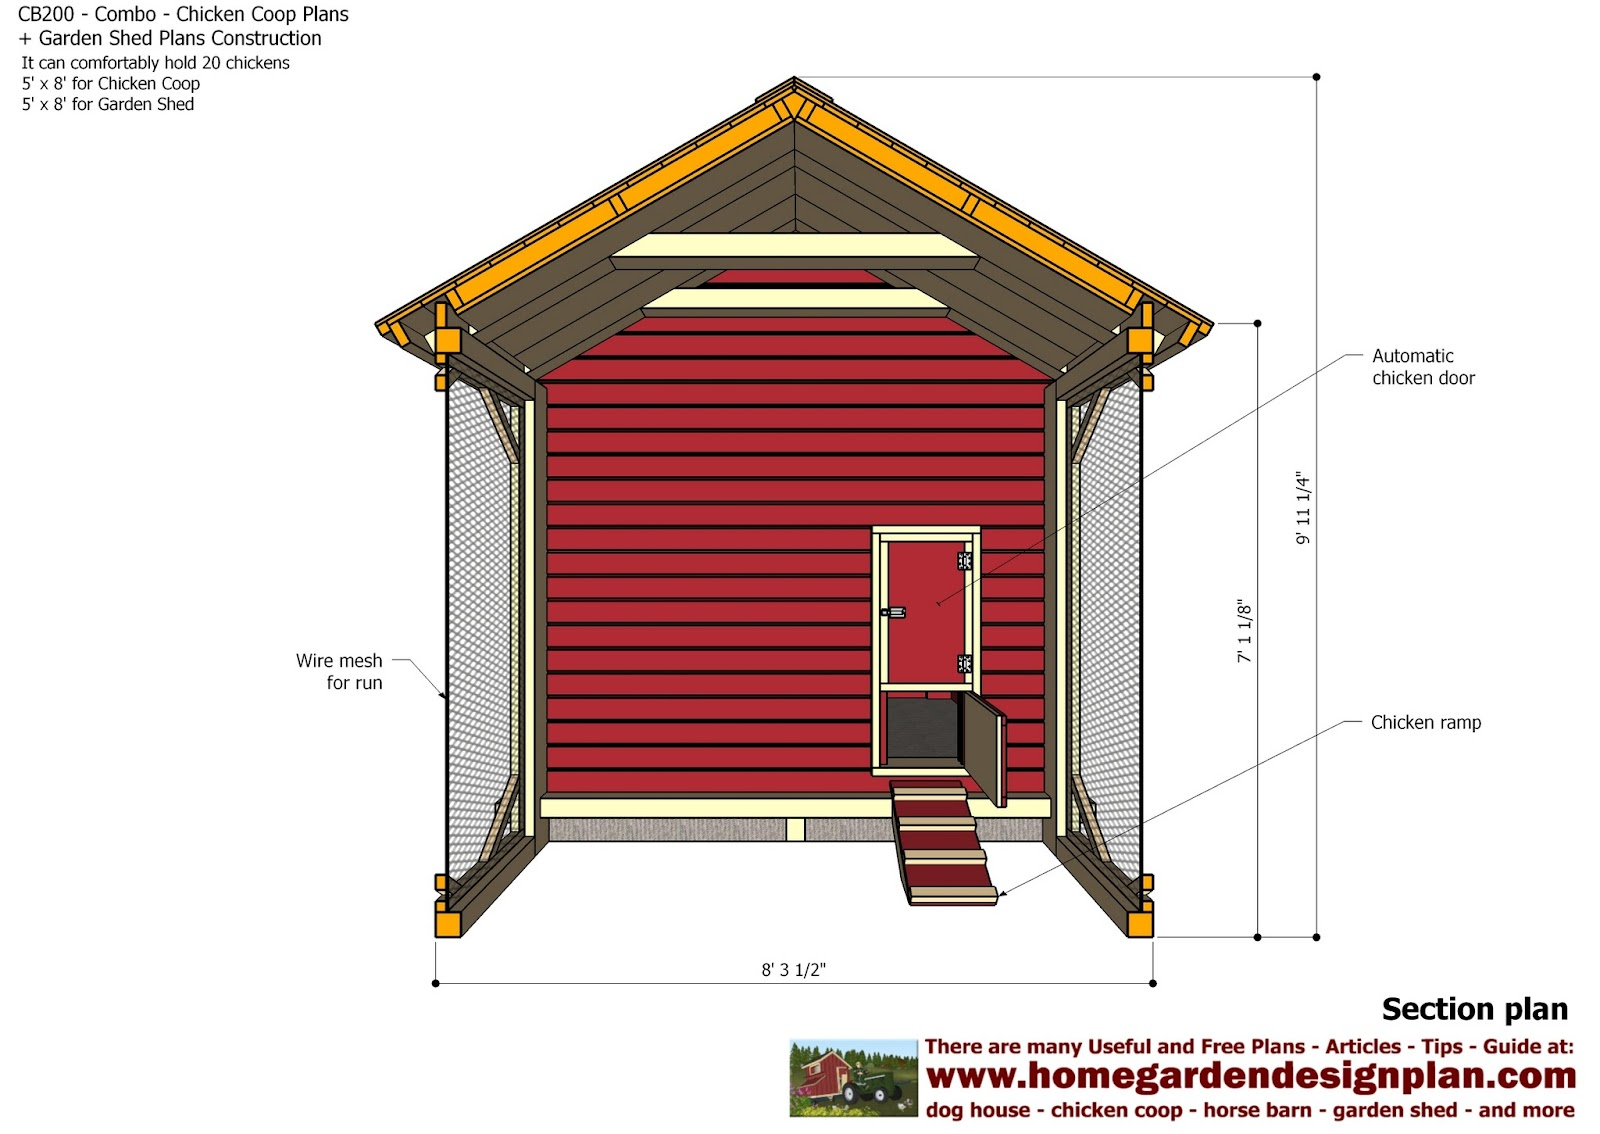 Garden Sheds Julianstown exellent garden sheds 2 5 x 1 our are simple and require only